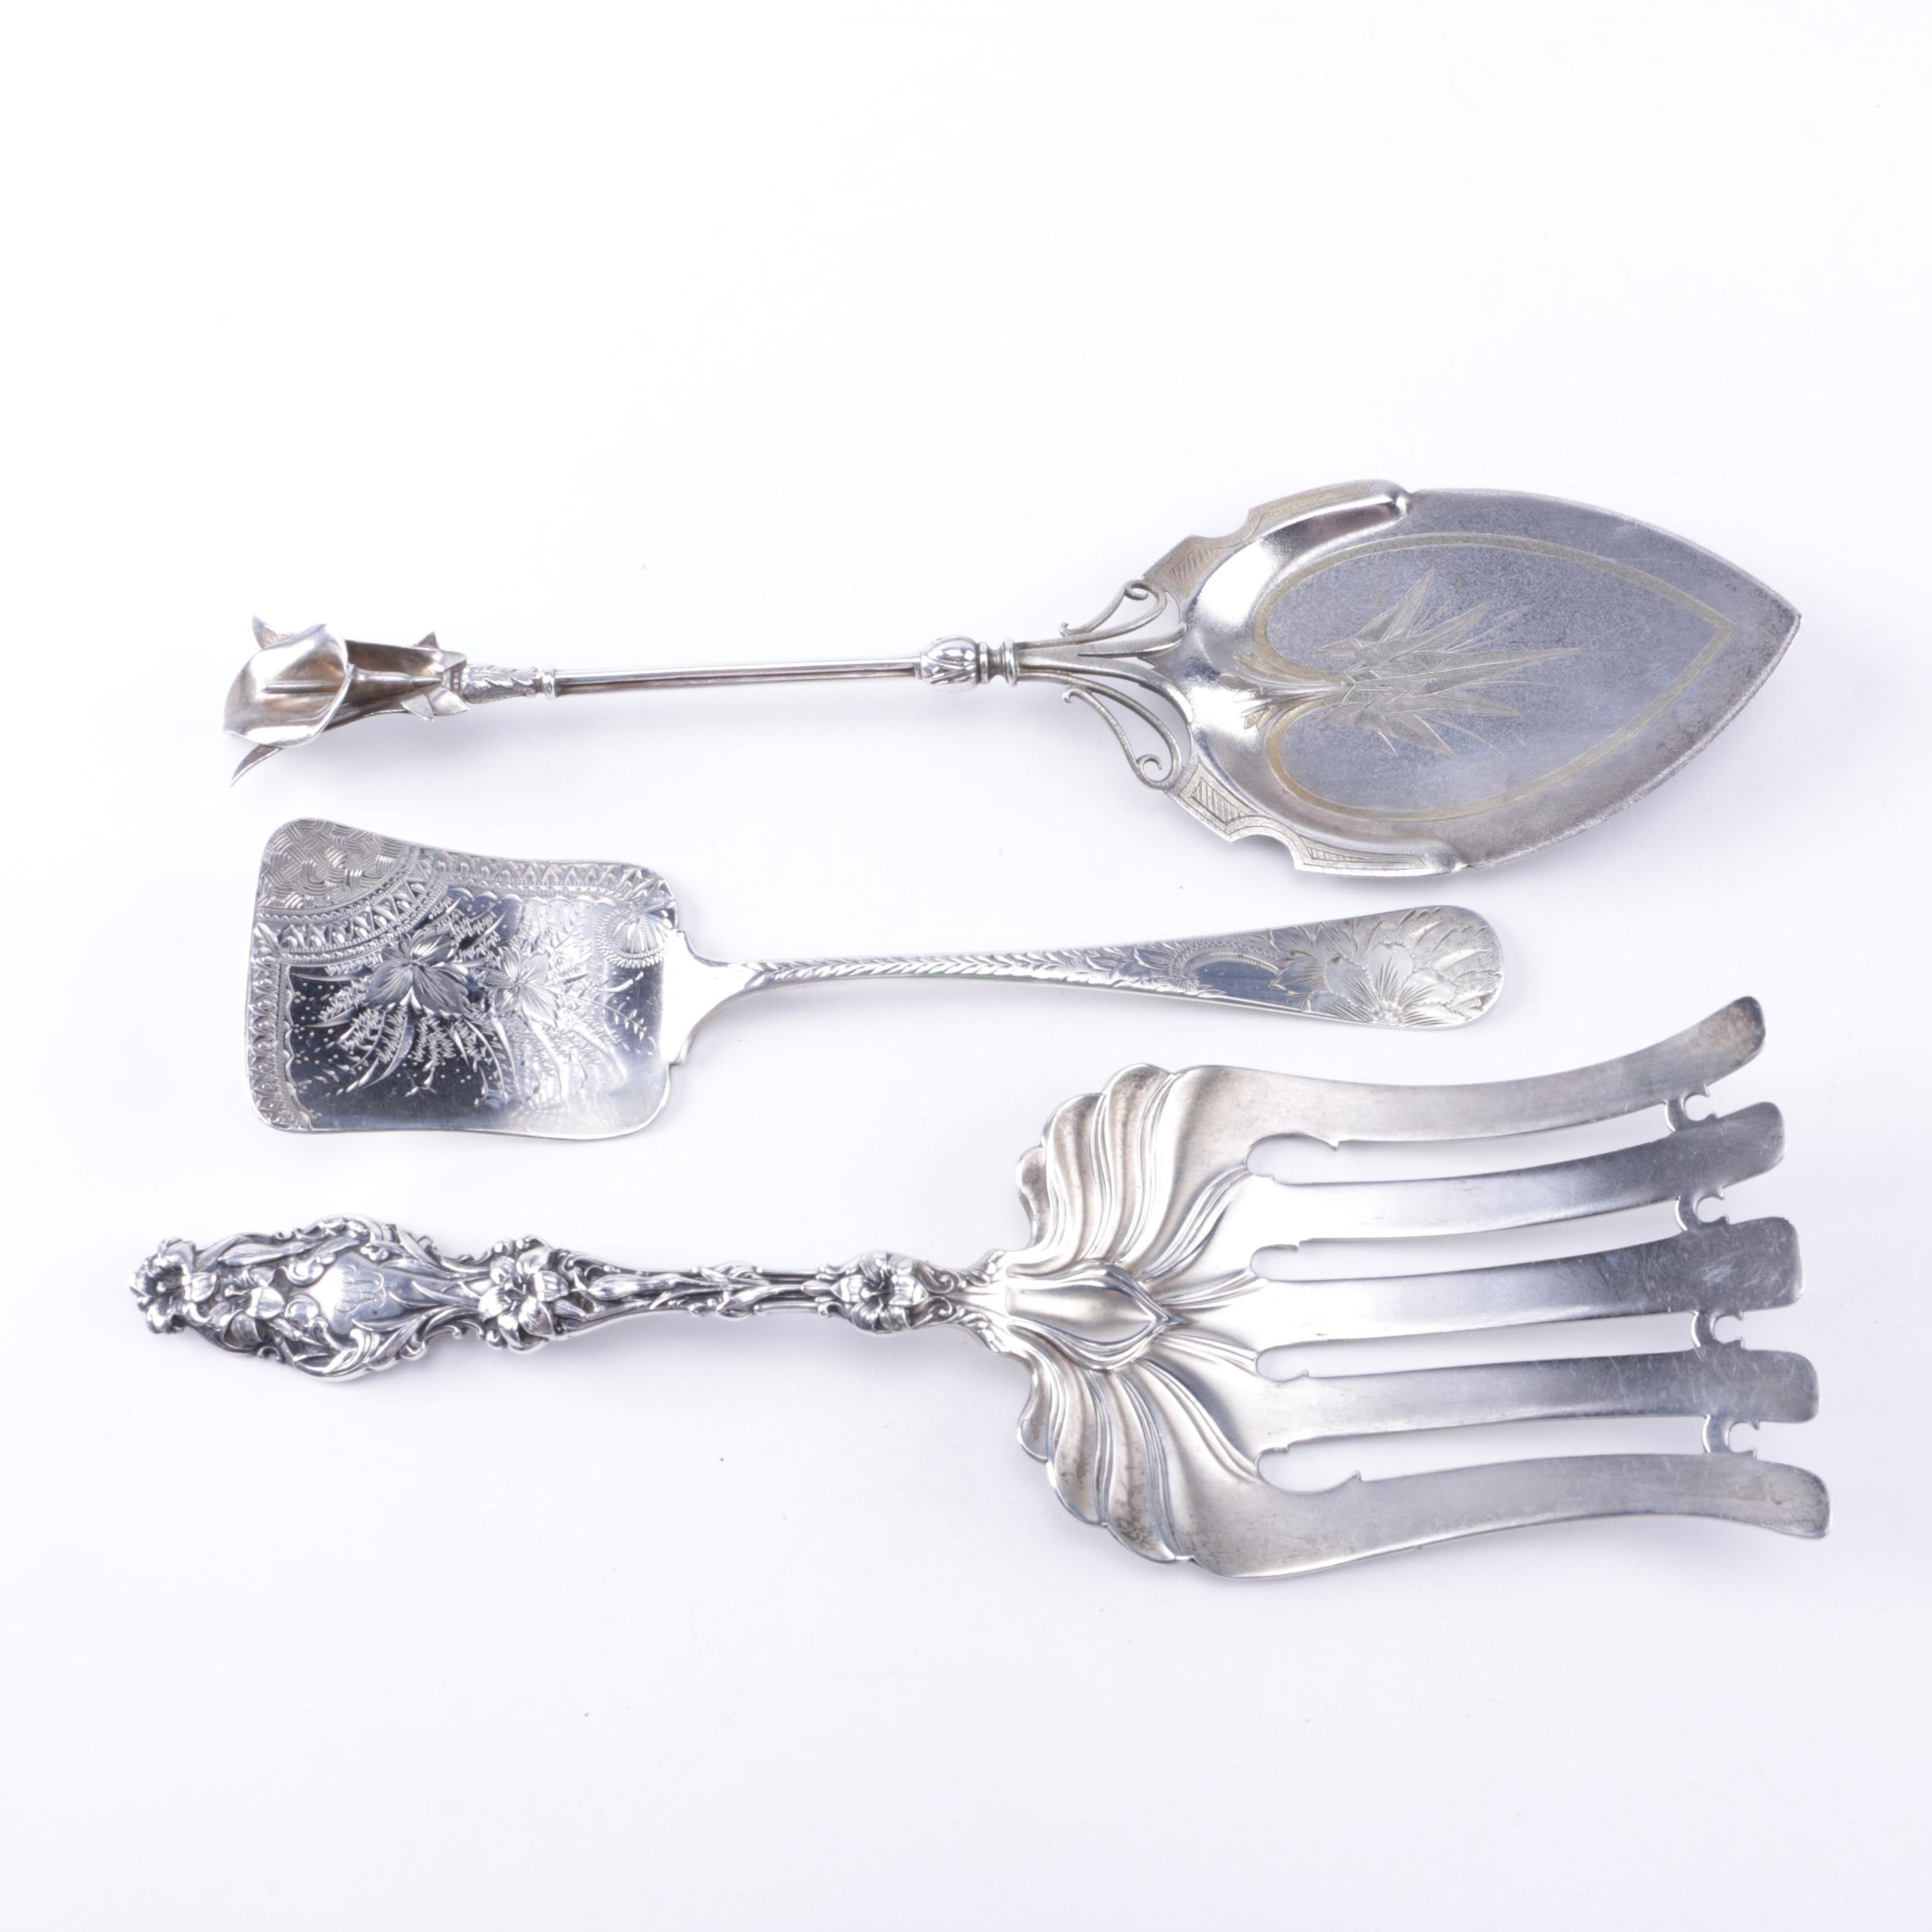 Antique Whiting Manufacturing Co. Sterling Serving Utensils with Cake Server